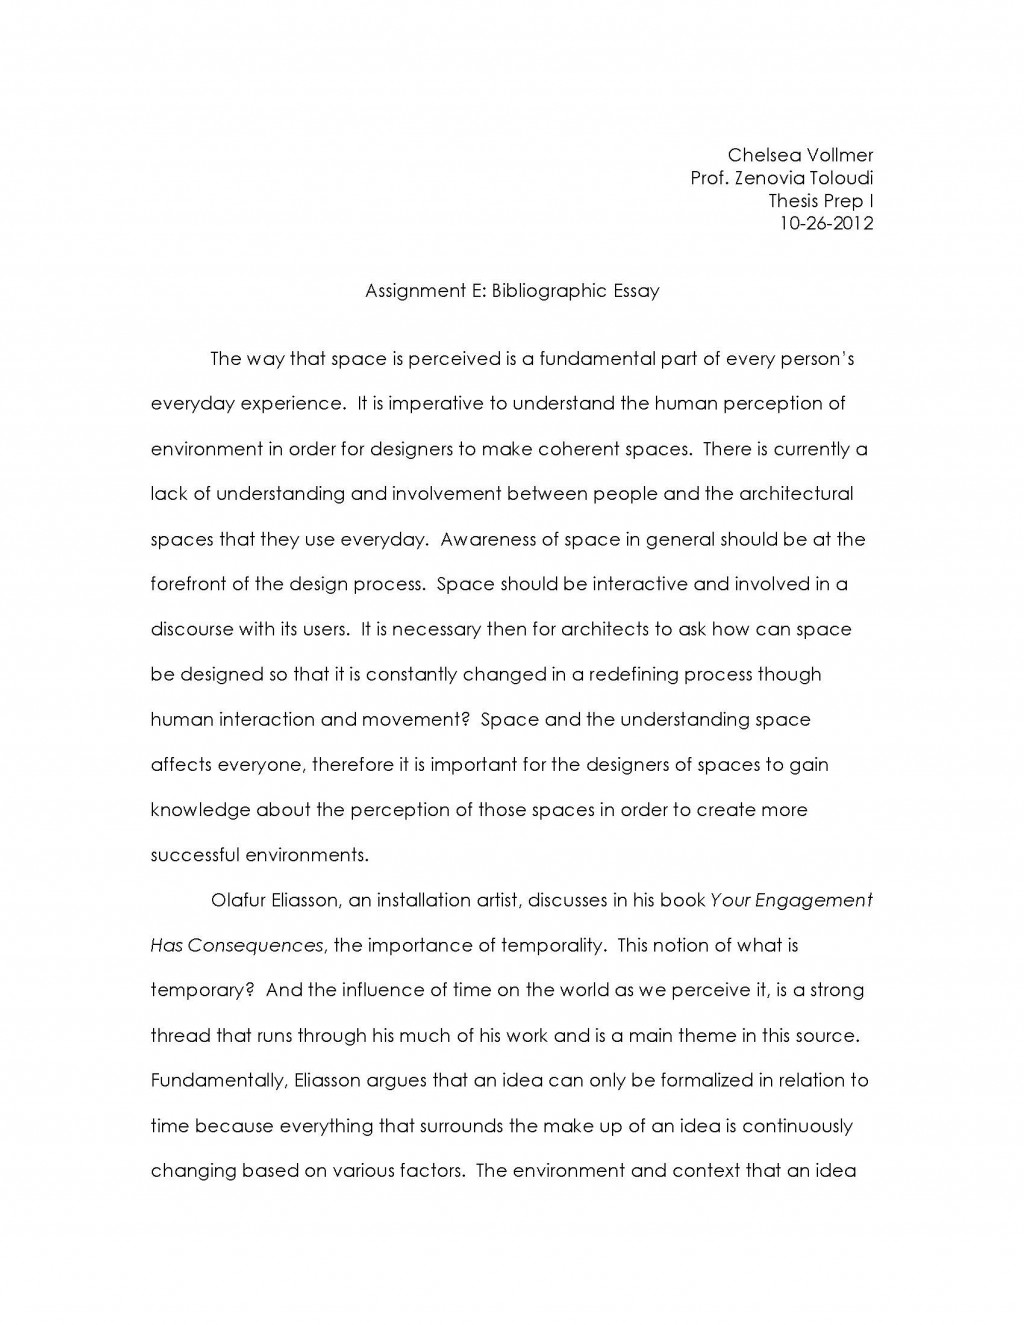 008 Assignment E Page 12 Essay Example Beautiful Satire Outline Funny Topics Large